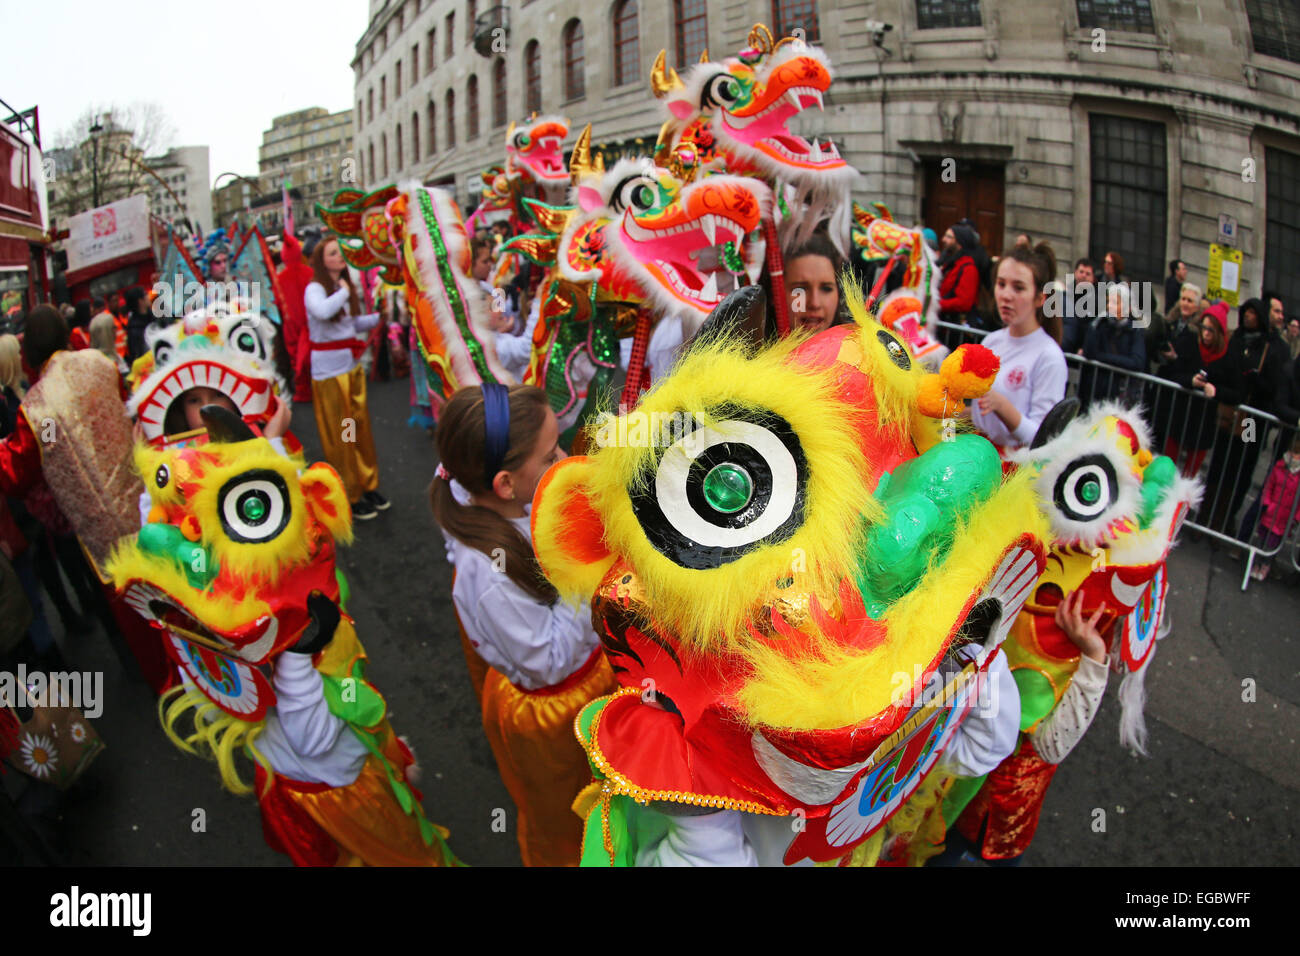 London, UK. 22nd February 2015. Chinese New Year Parade 2015, London for the year of the goat or sheep. Credit: - Stock Image